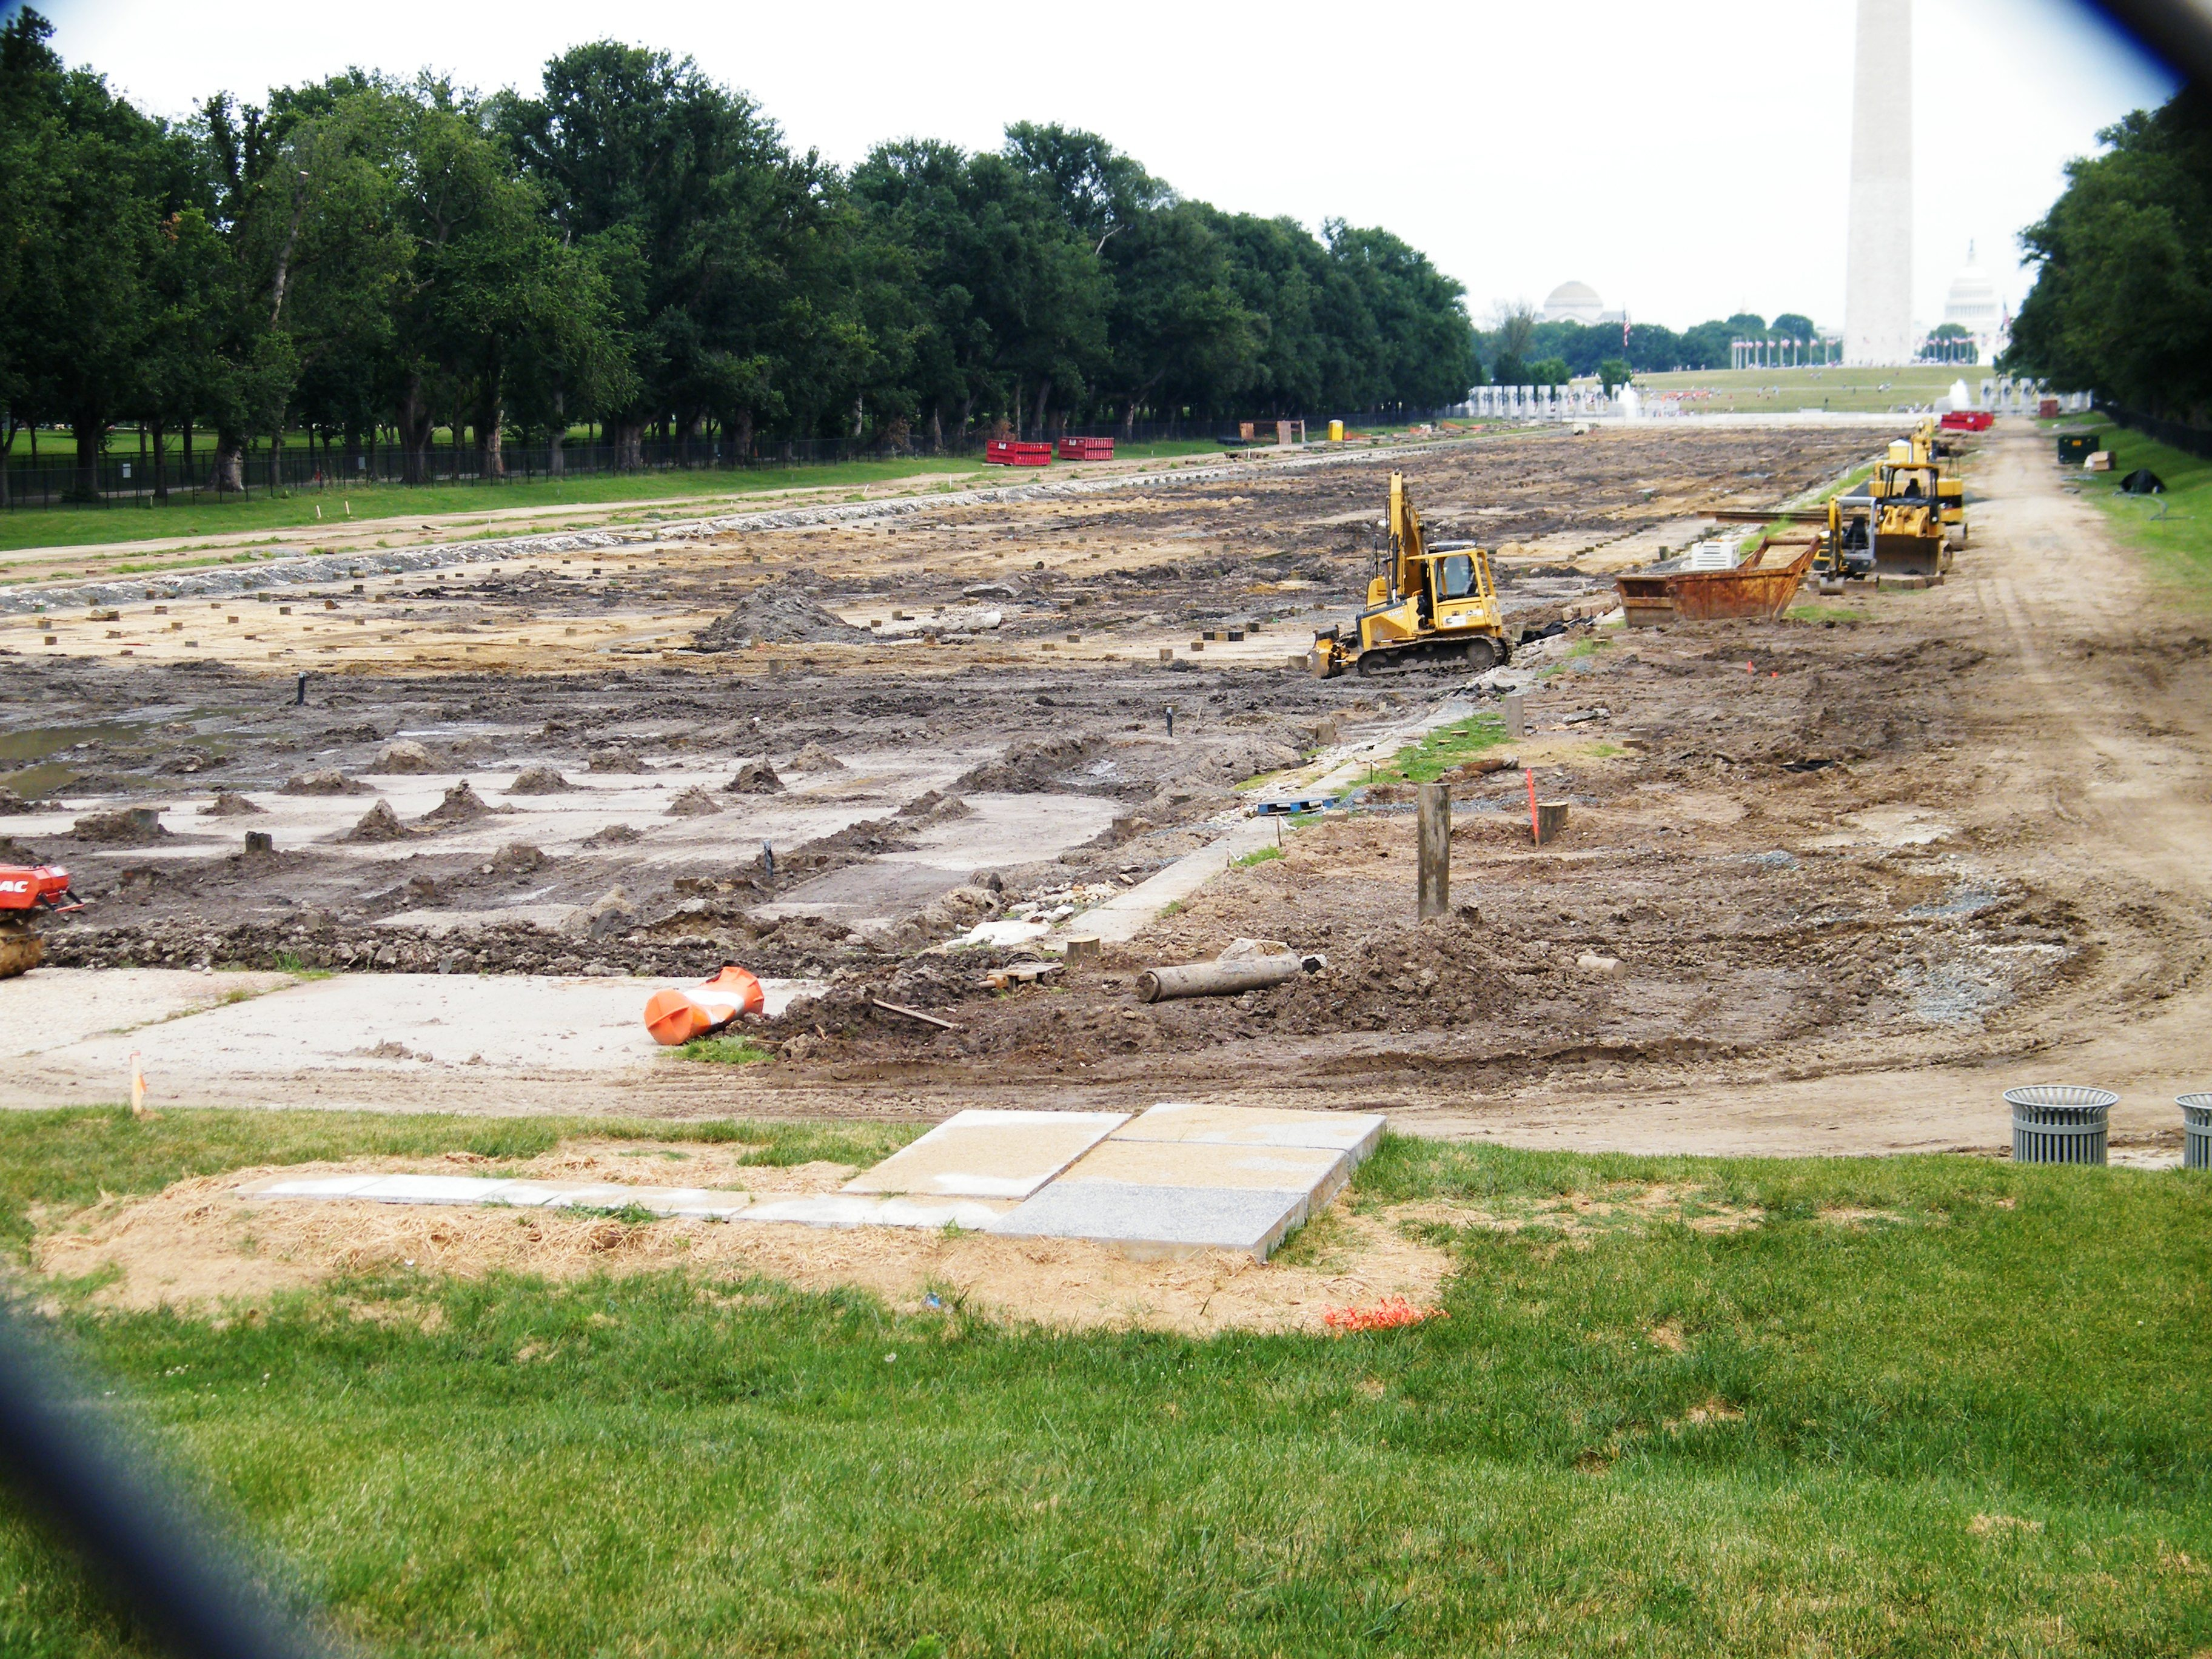 National Mall undergoing renovations - Stierch.jpg English: National Mall under renovations, 2011 Date 18 June 2011 Source Own work Author